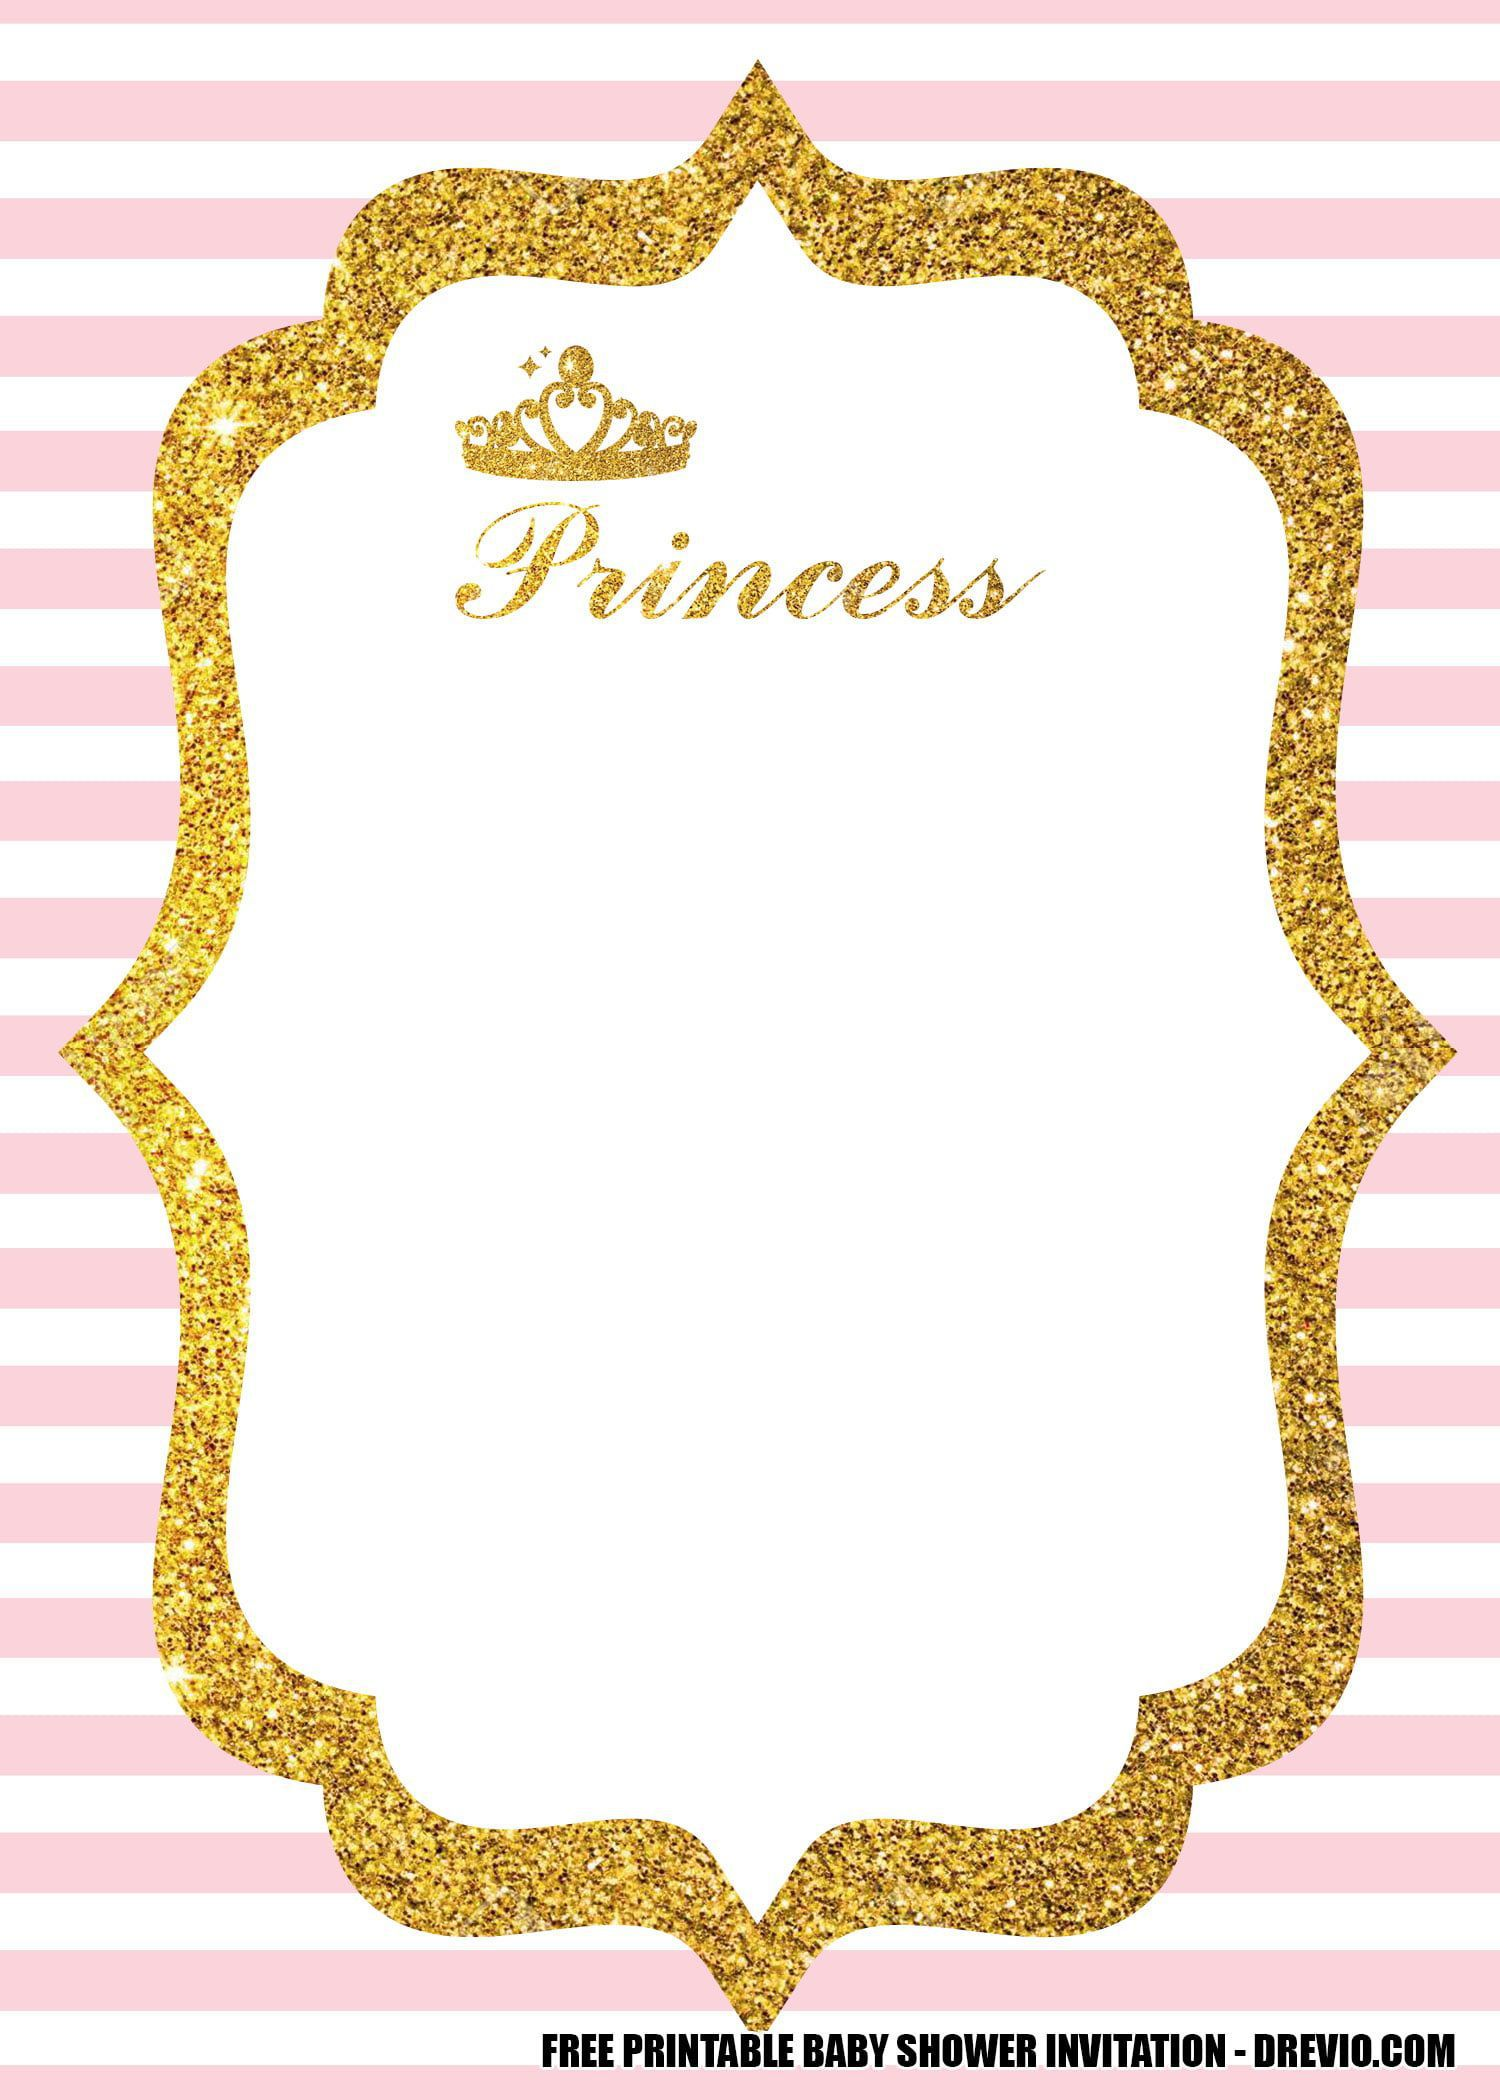 008 Stunning Free Princes Baby Shower Invitation Template For Word Image Full